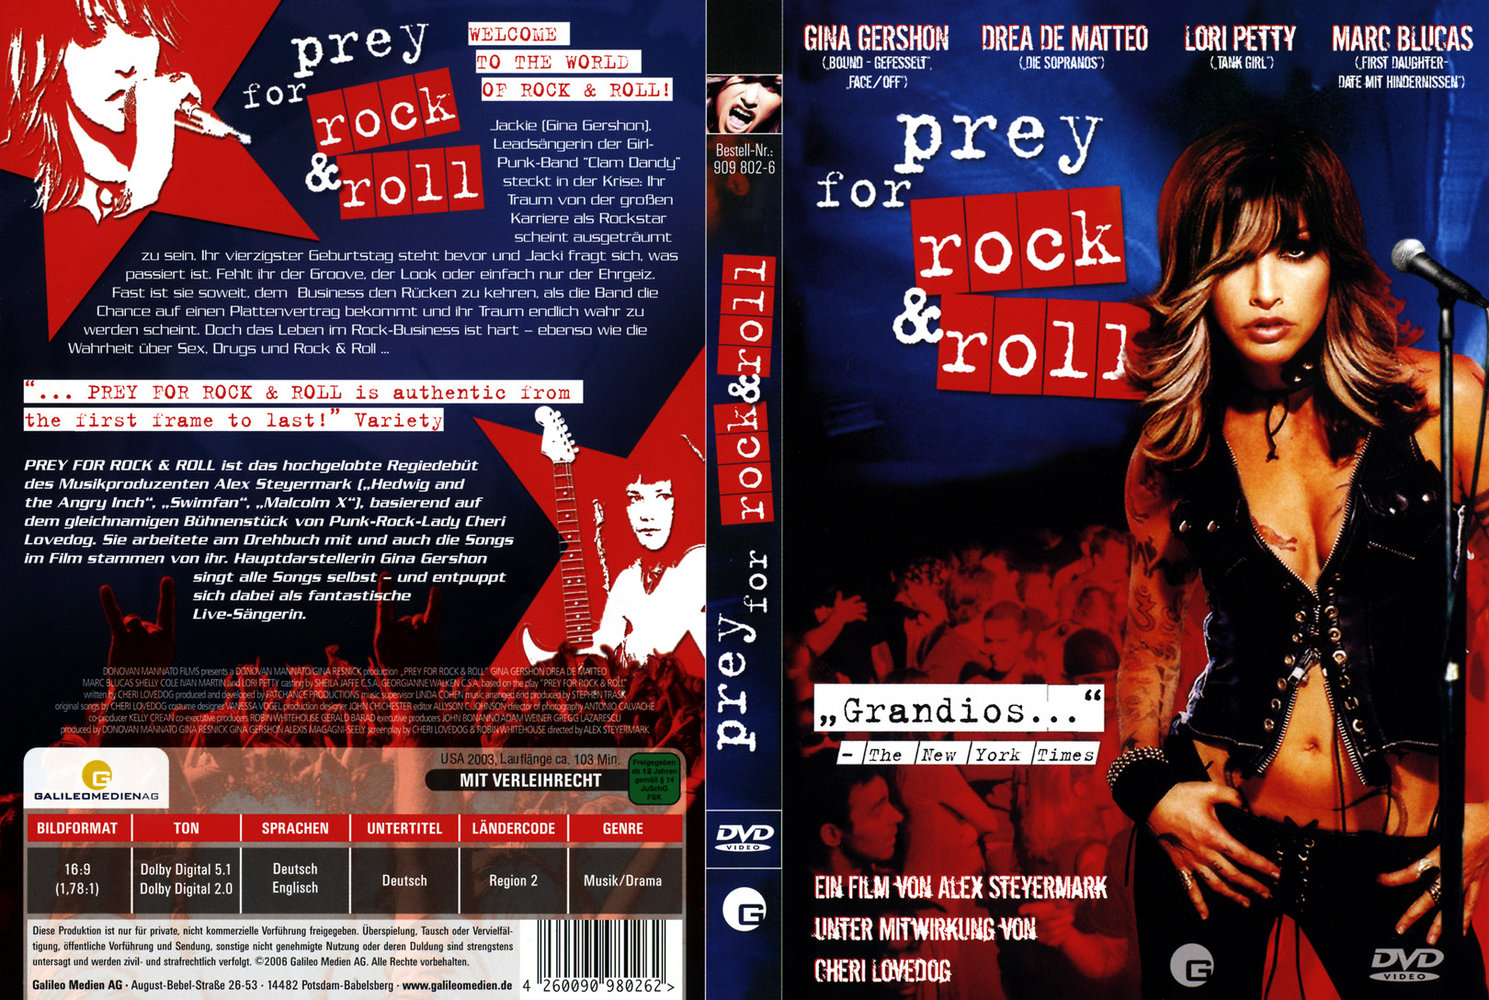 http://2.bp.blogspot.com/-ze00lYElBM4/UI_S2kPl0FI/AAAAAAAAIFI/WXAInyXZ_5U/s1600/Prey_For_Rock_And_Roll_German-%5Bcdcovers_cc%5D-front.jpg